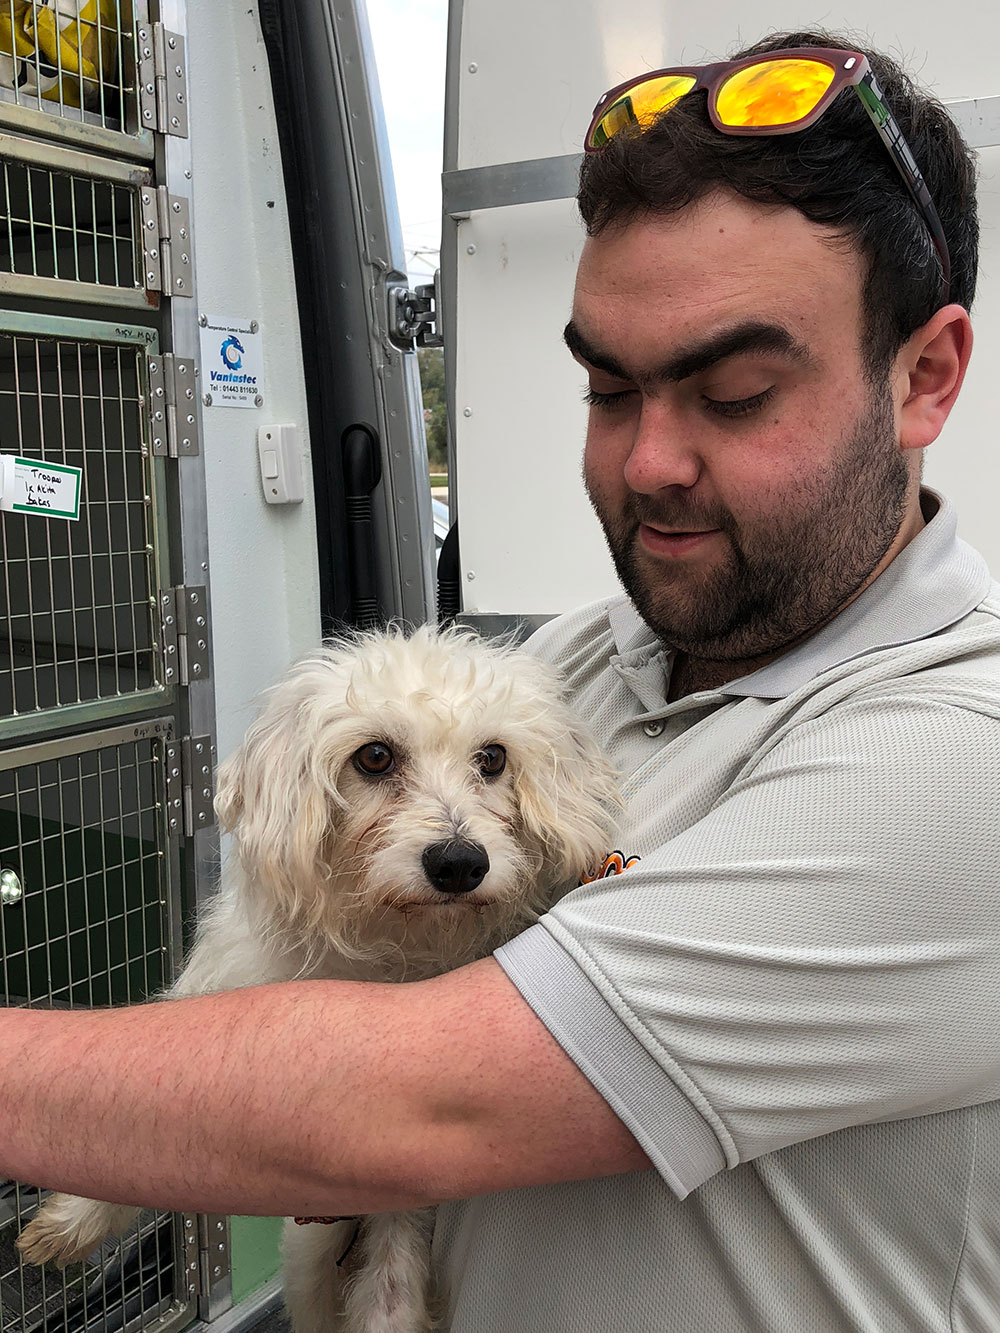 Also heading to Swansea is Leo, on his way to rejoin owner Rhian. Here he is having a hug with courier Huw.